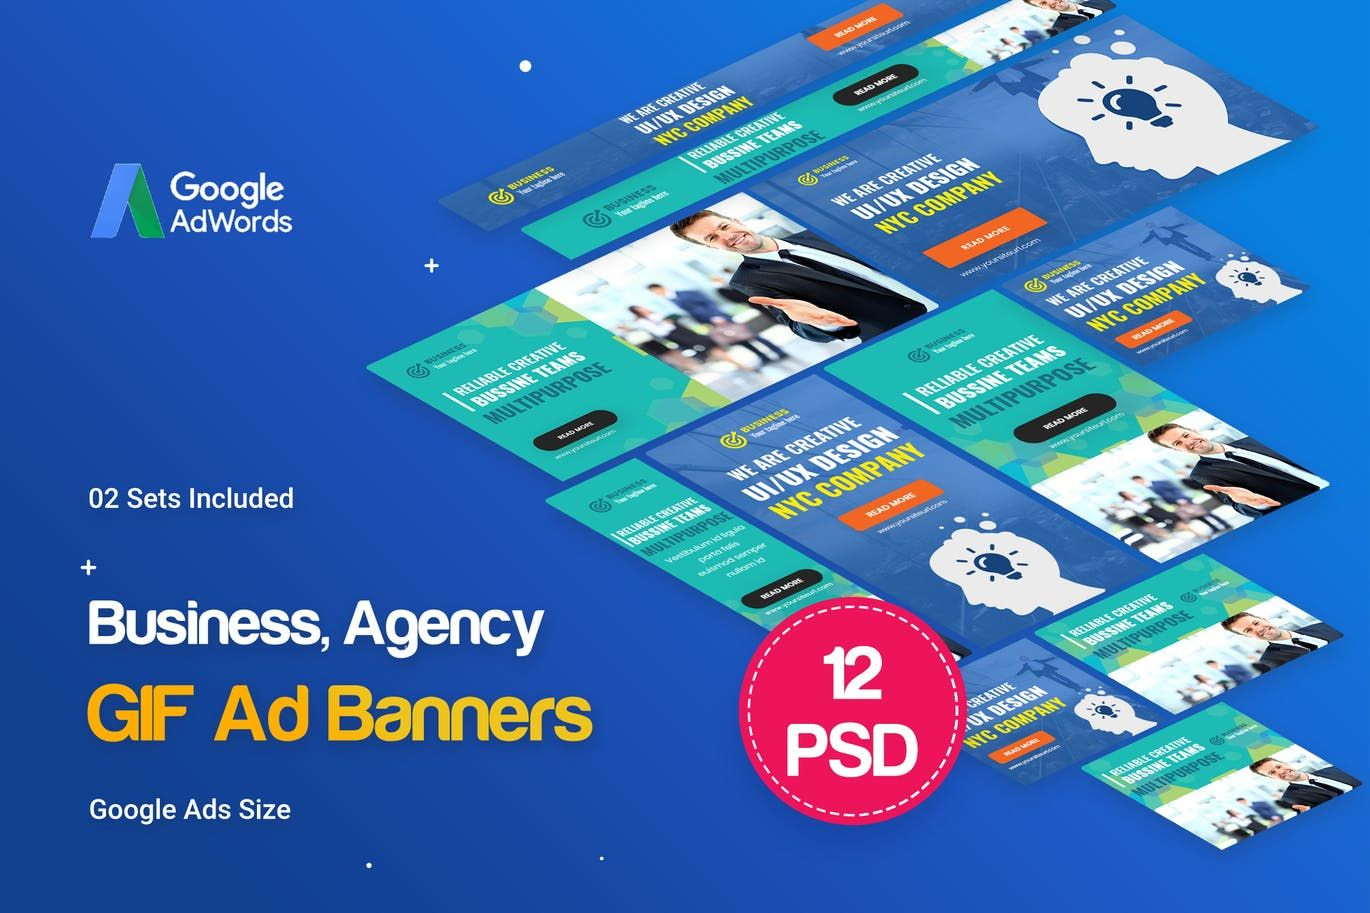 Animated gif business agency banners ad by idoodle on